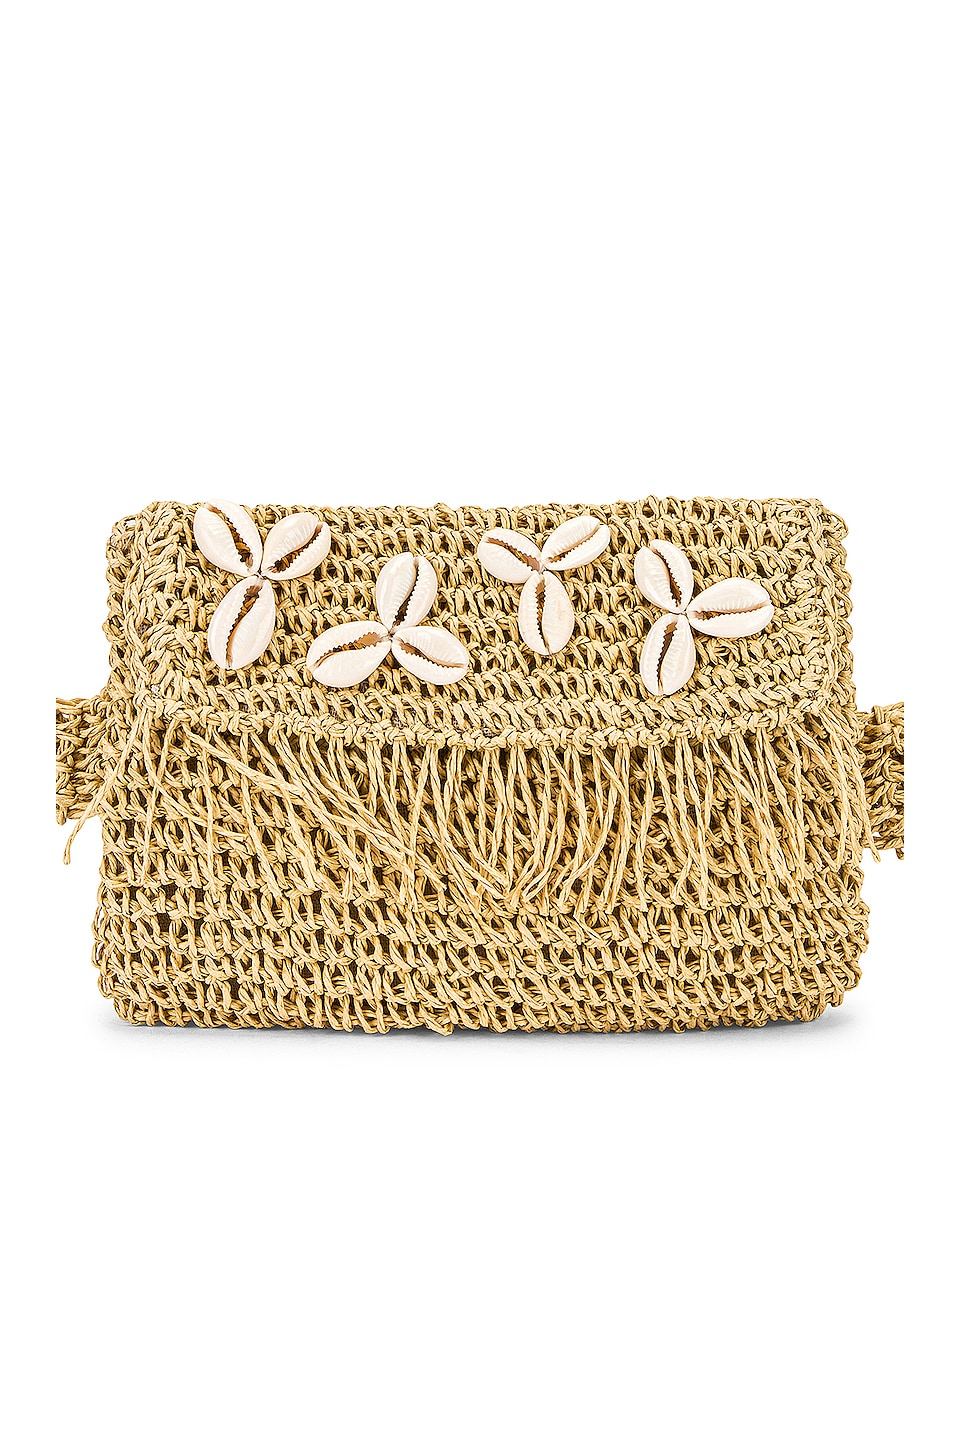 L*SPACE Sienna Fanny Pack in Natural